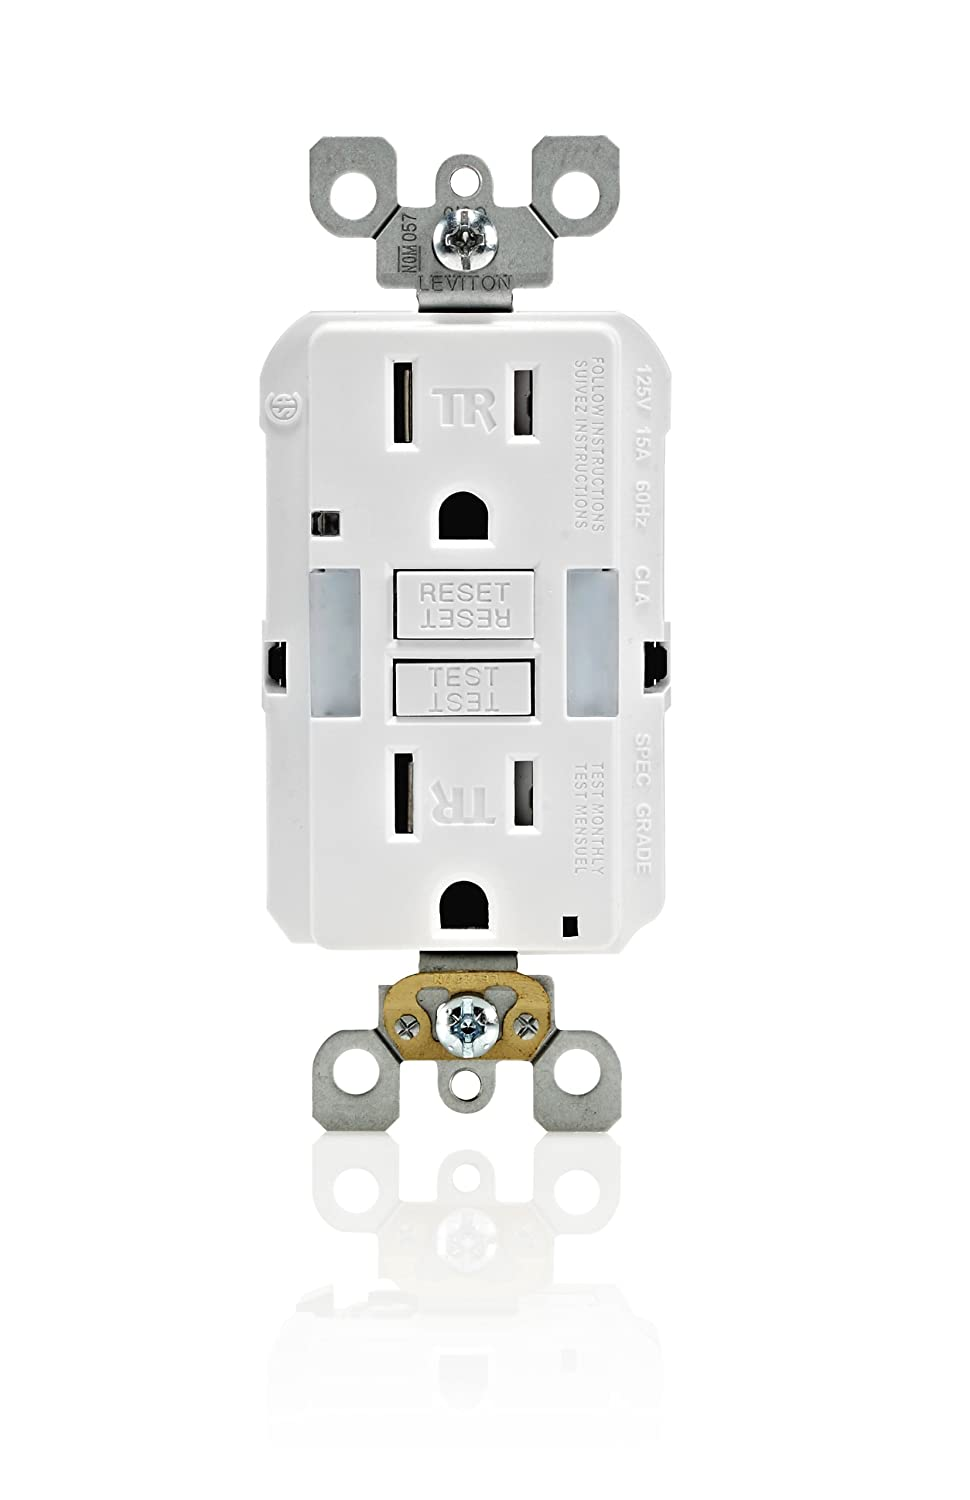 Leviton X7592 T 15 Amp Slim Guide Light Gfci Smartlockpro Wiring Two Outlets Series Monochromatic Back And Side Wired Self Grounding Clip Tamper Resistant Almond Night